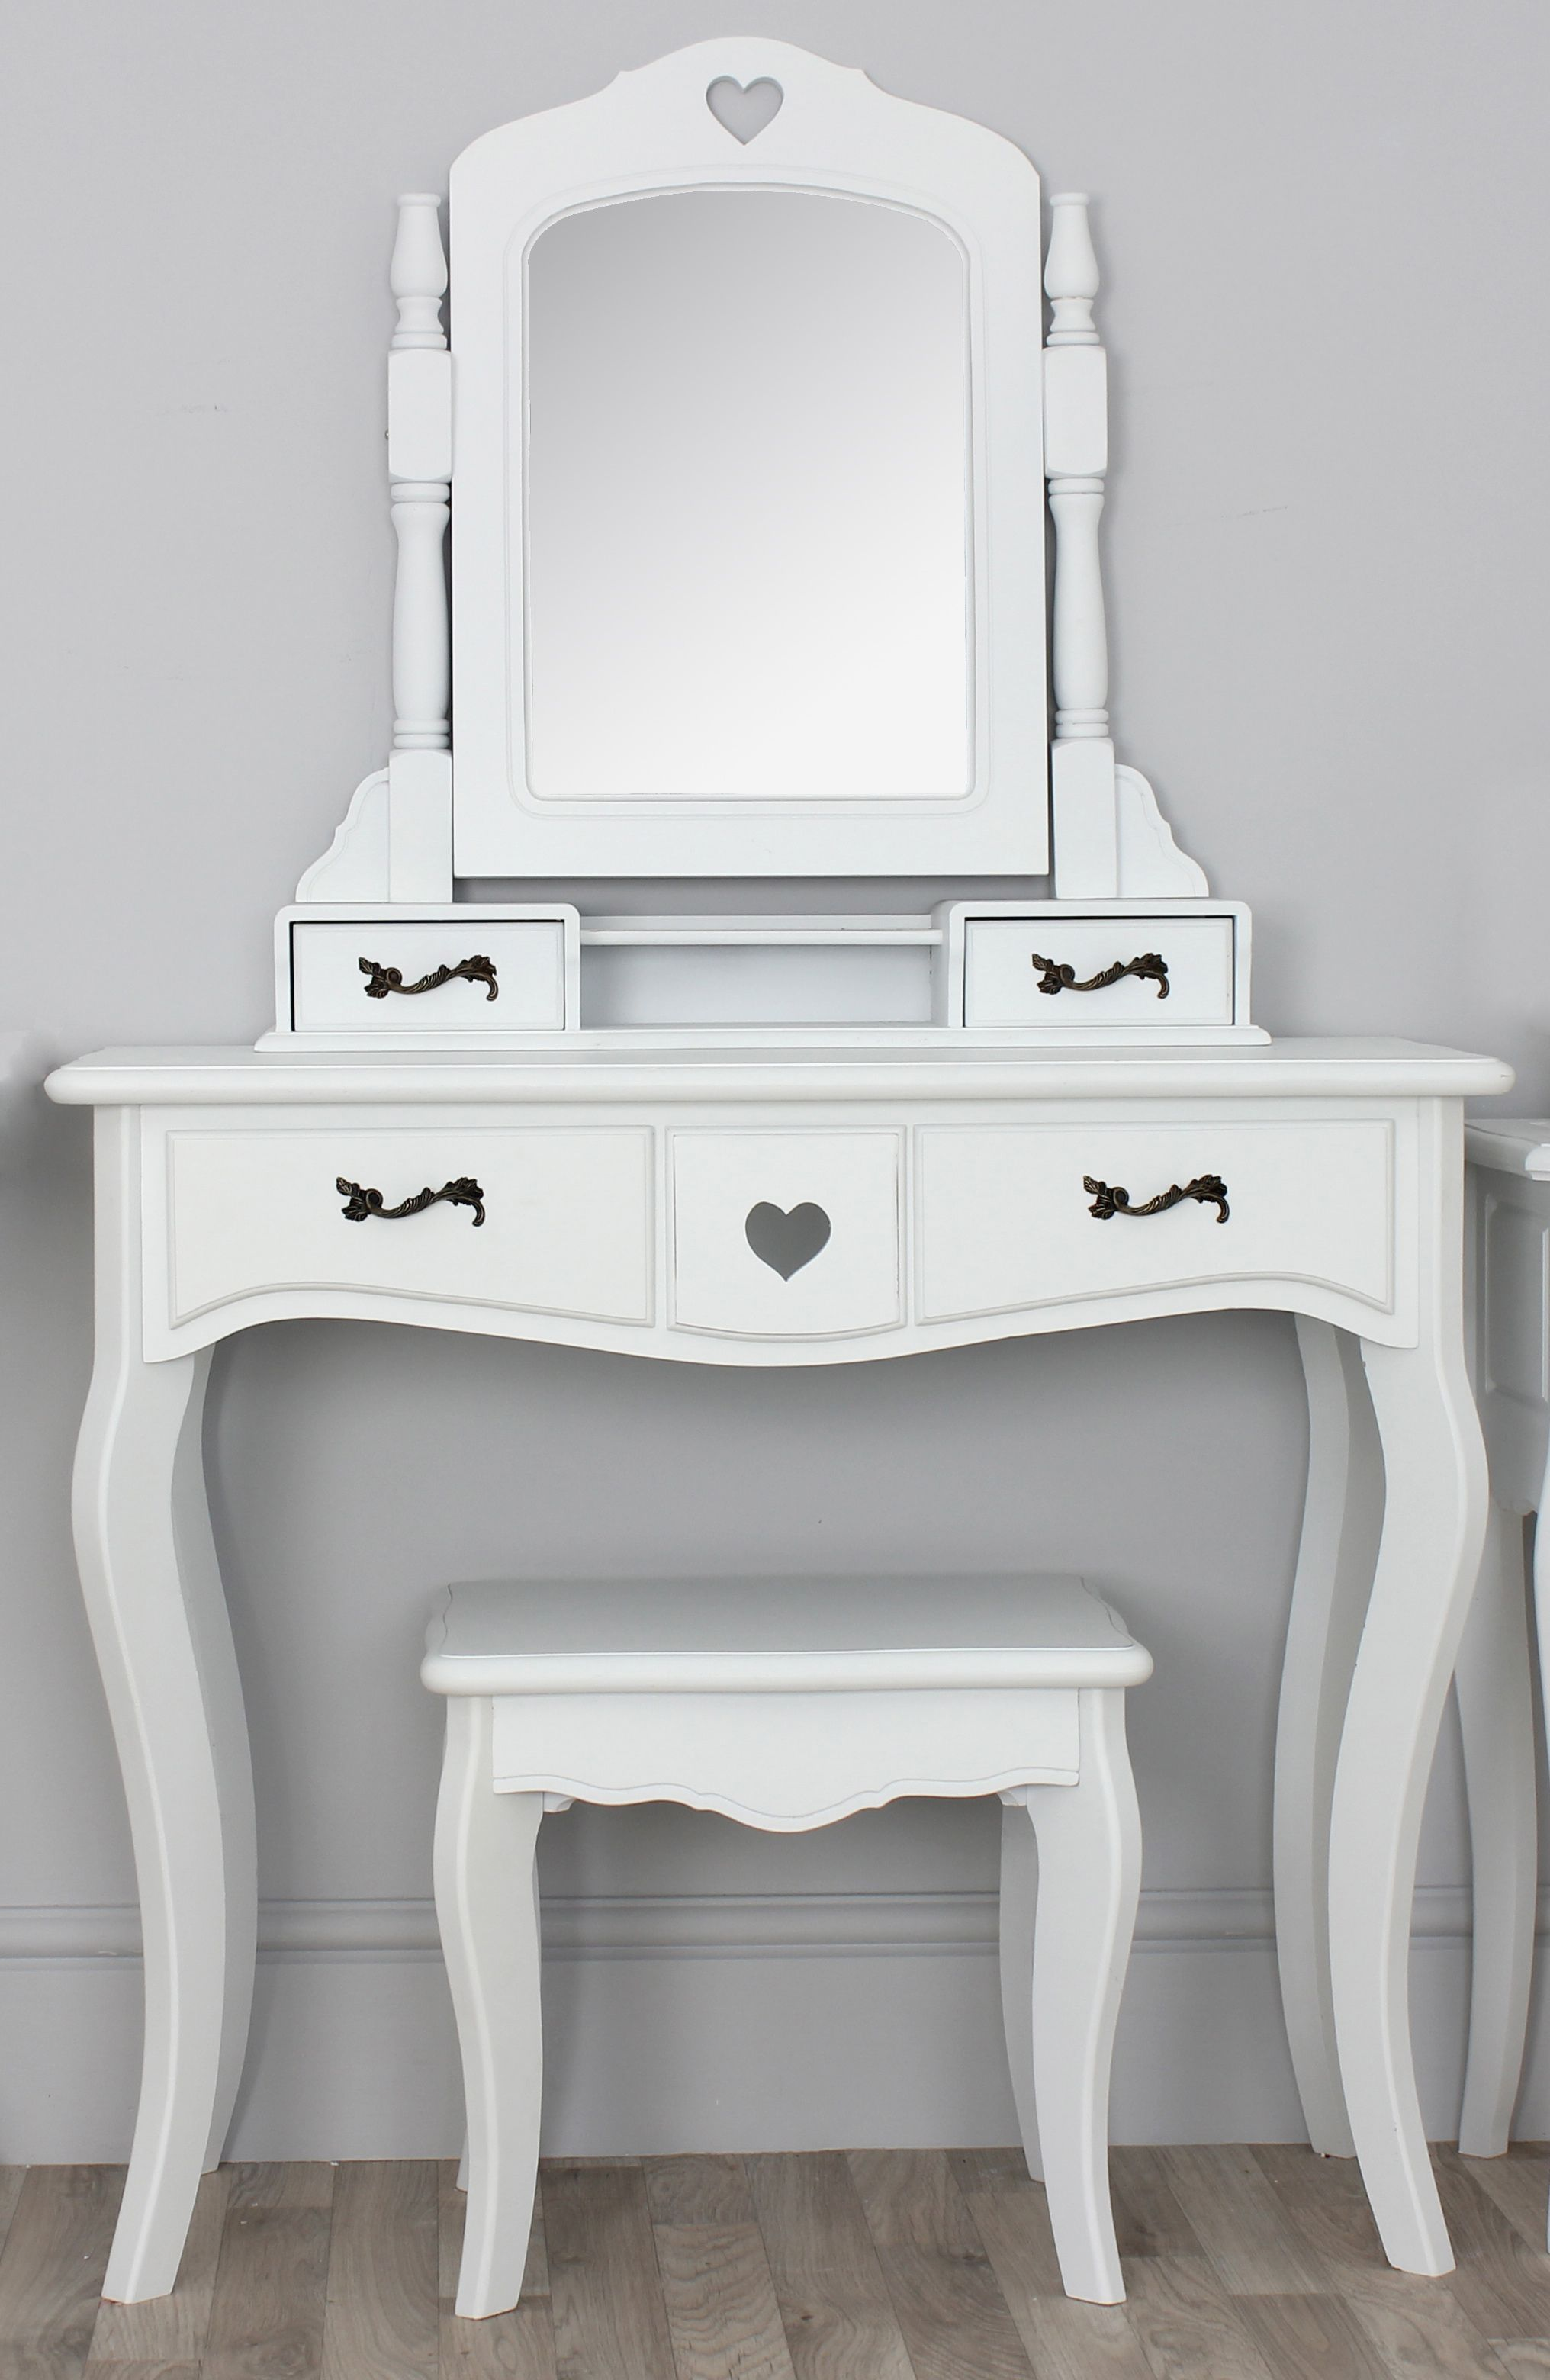 Narrow White Vanity Table With Four Drawers And Spinning